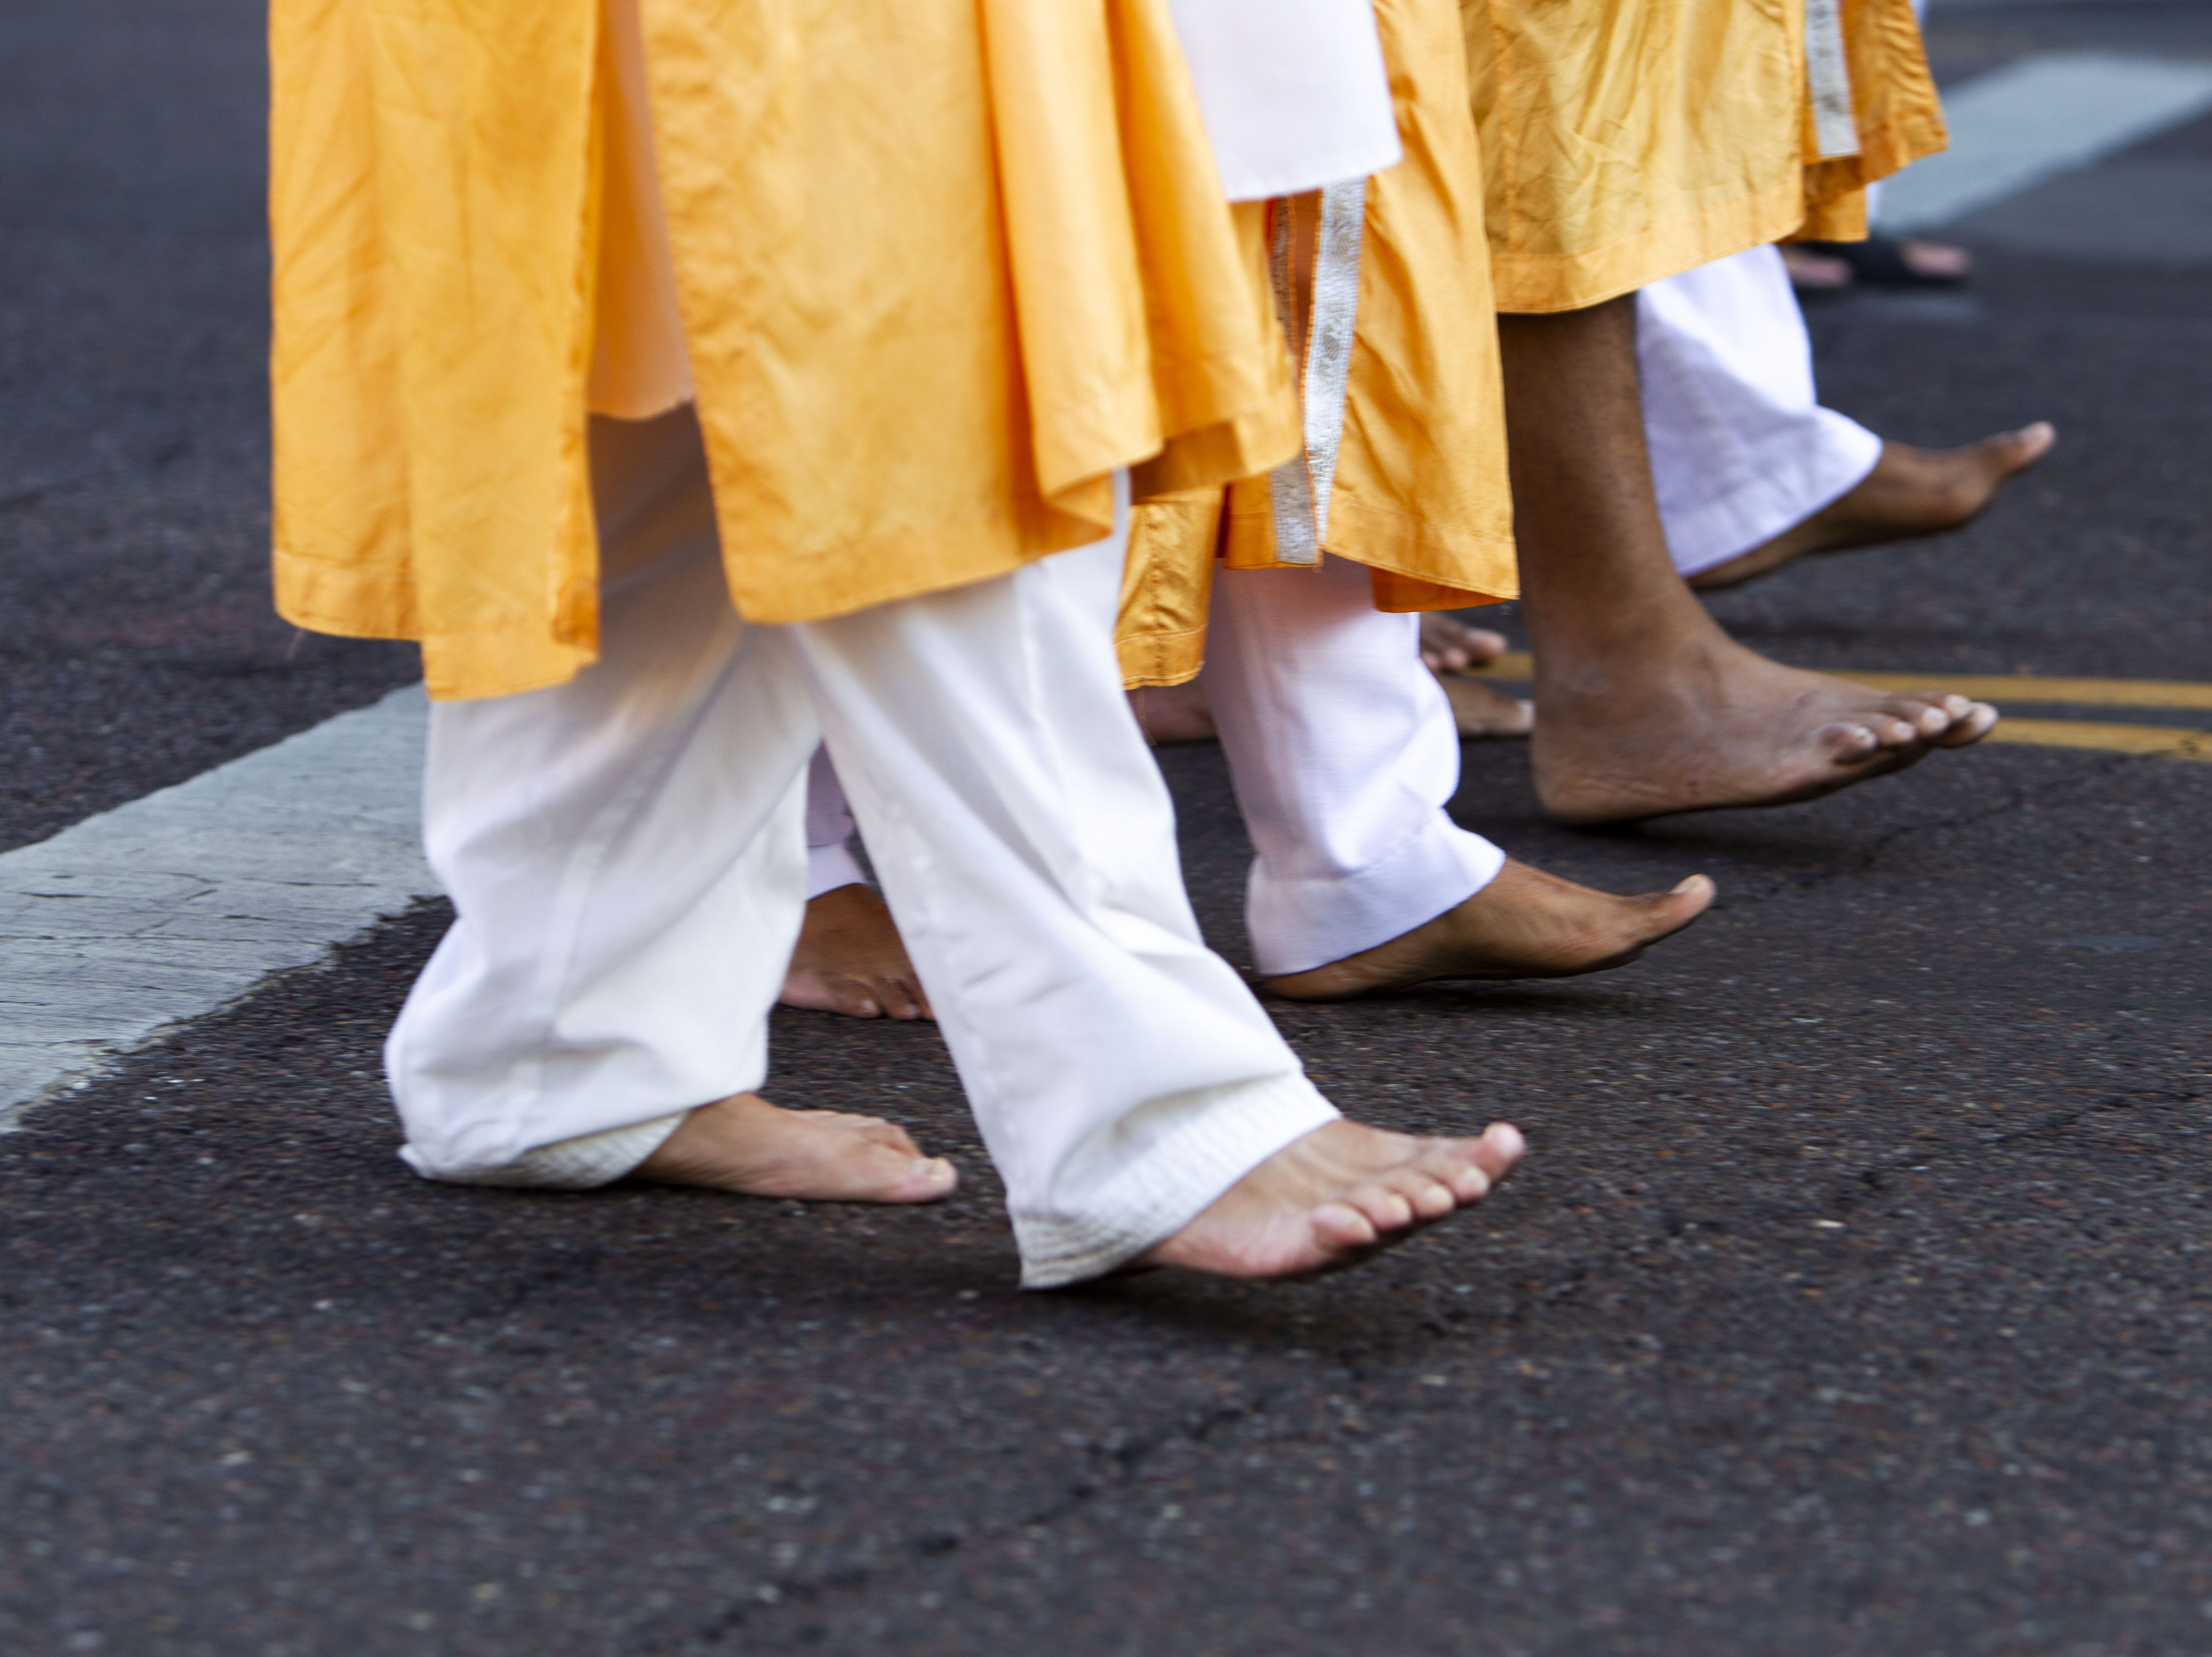 A Nagar Kirtan procession in downtown Phoenix is led by the Panj Pyare, five Sikh men, on March 24, 2019.